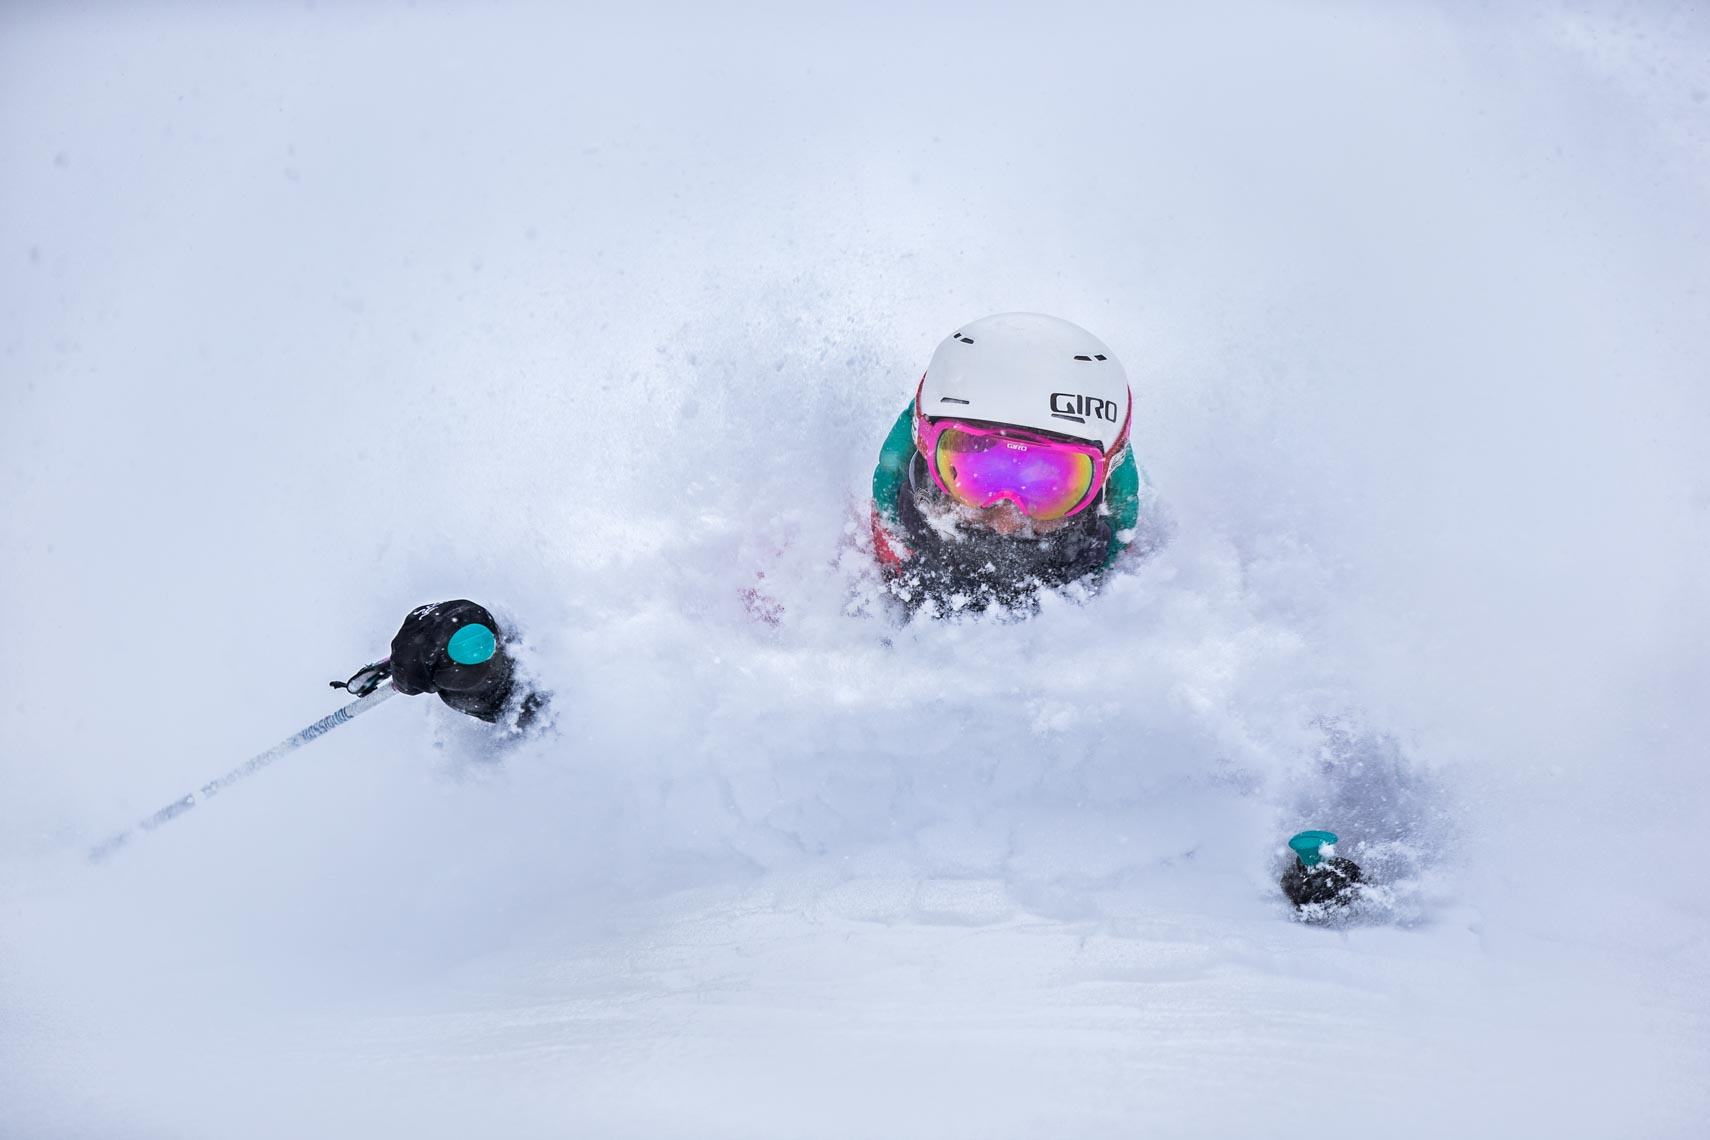 Womens ski helmet and apparel shown by Whistler ski photographer in Japan.